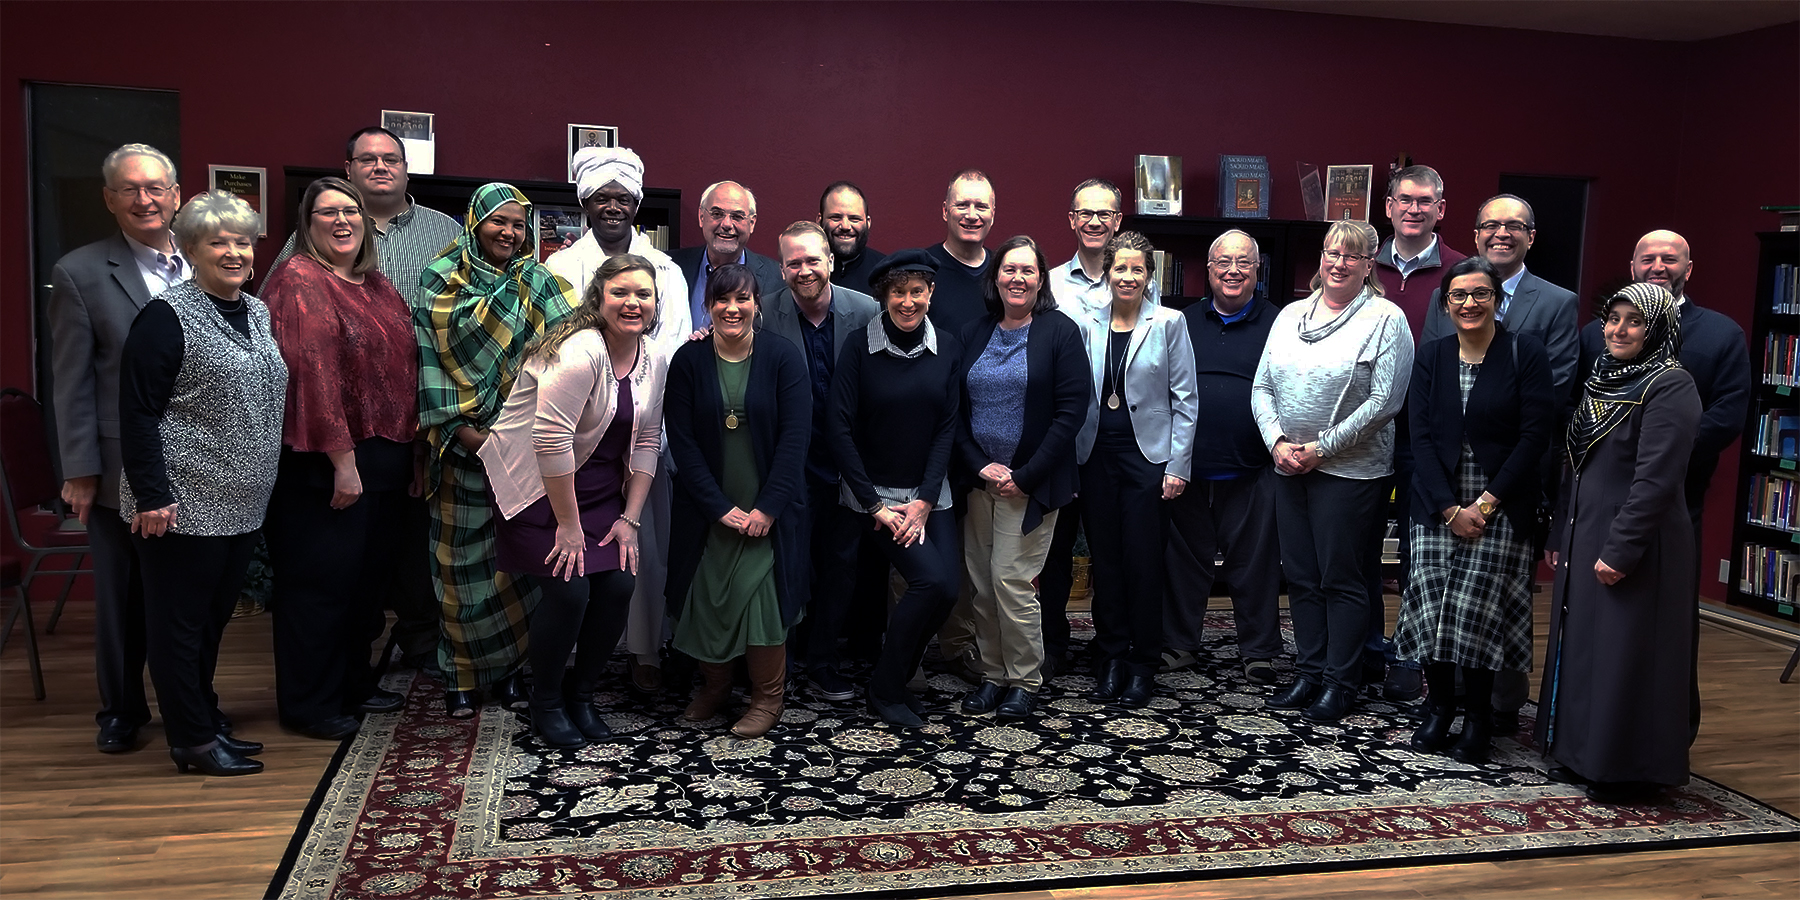 Members of the Magic Valley Interreligious Dialogue group at a recent dinner with their spouses in Twin Falls, Idaho. Photo provided.